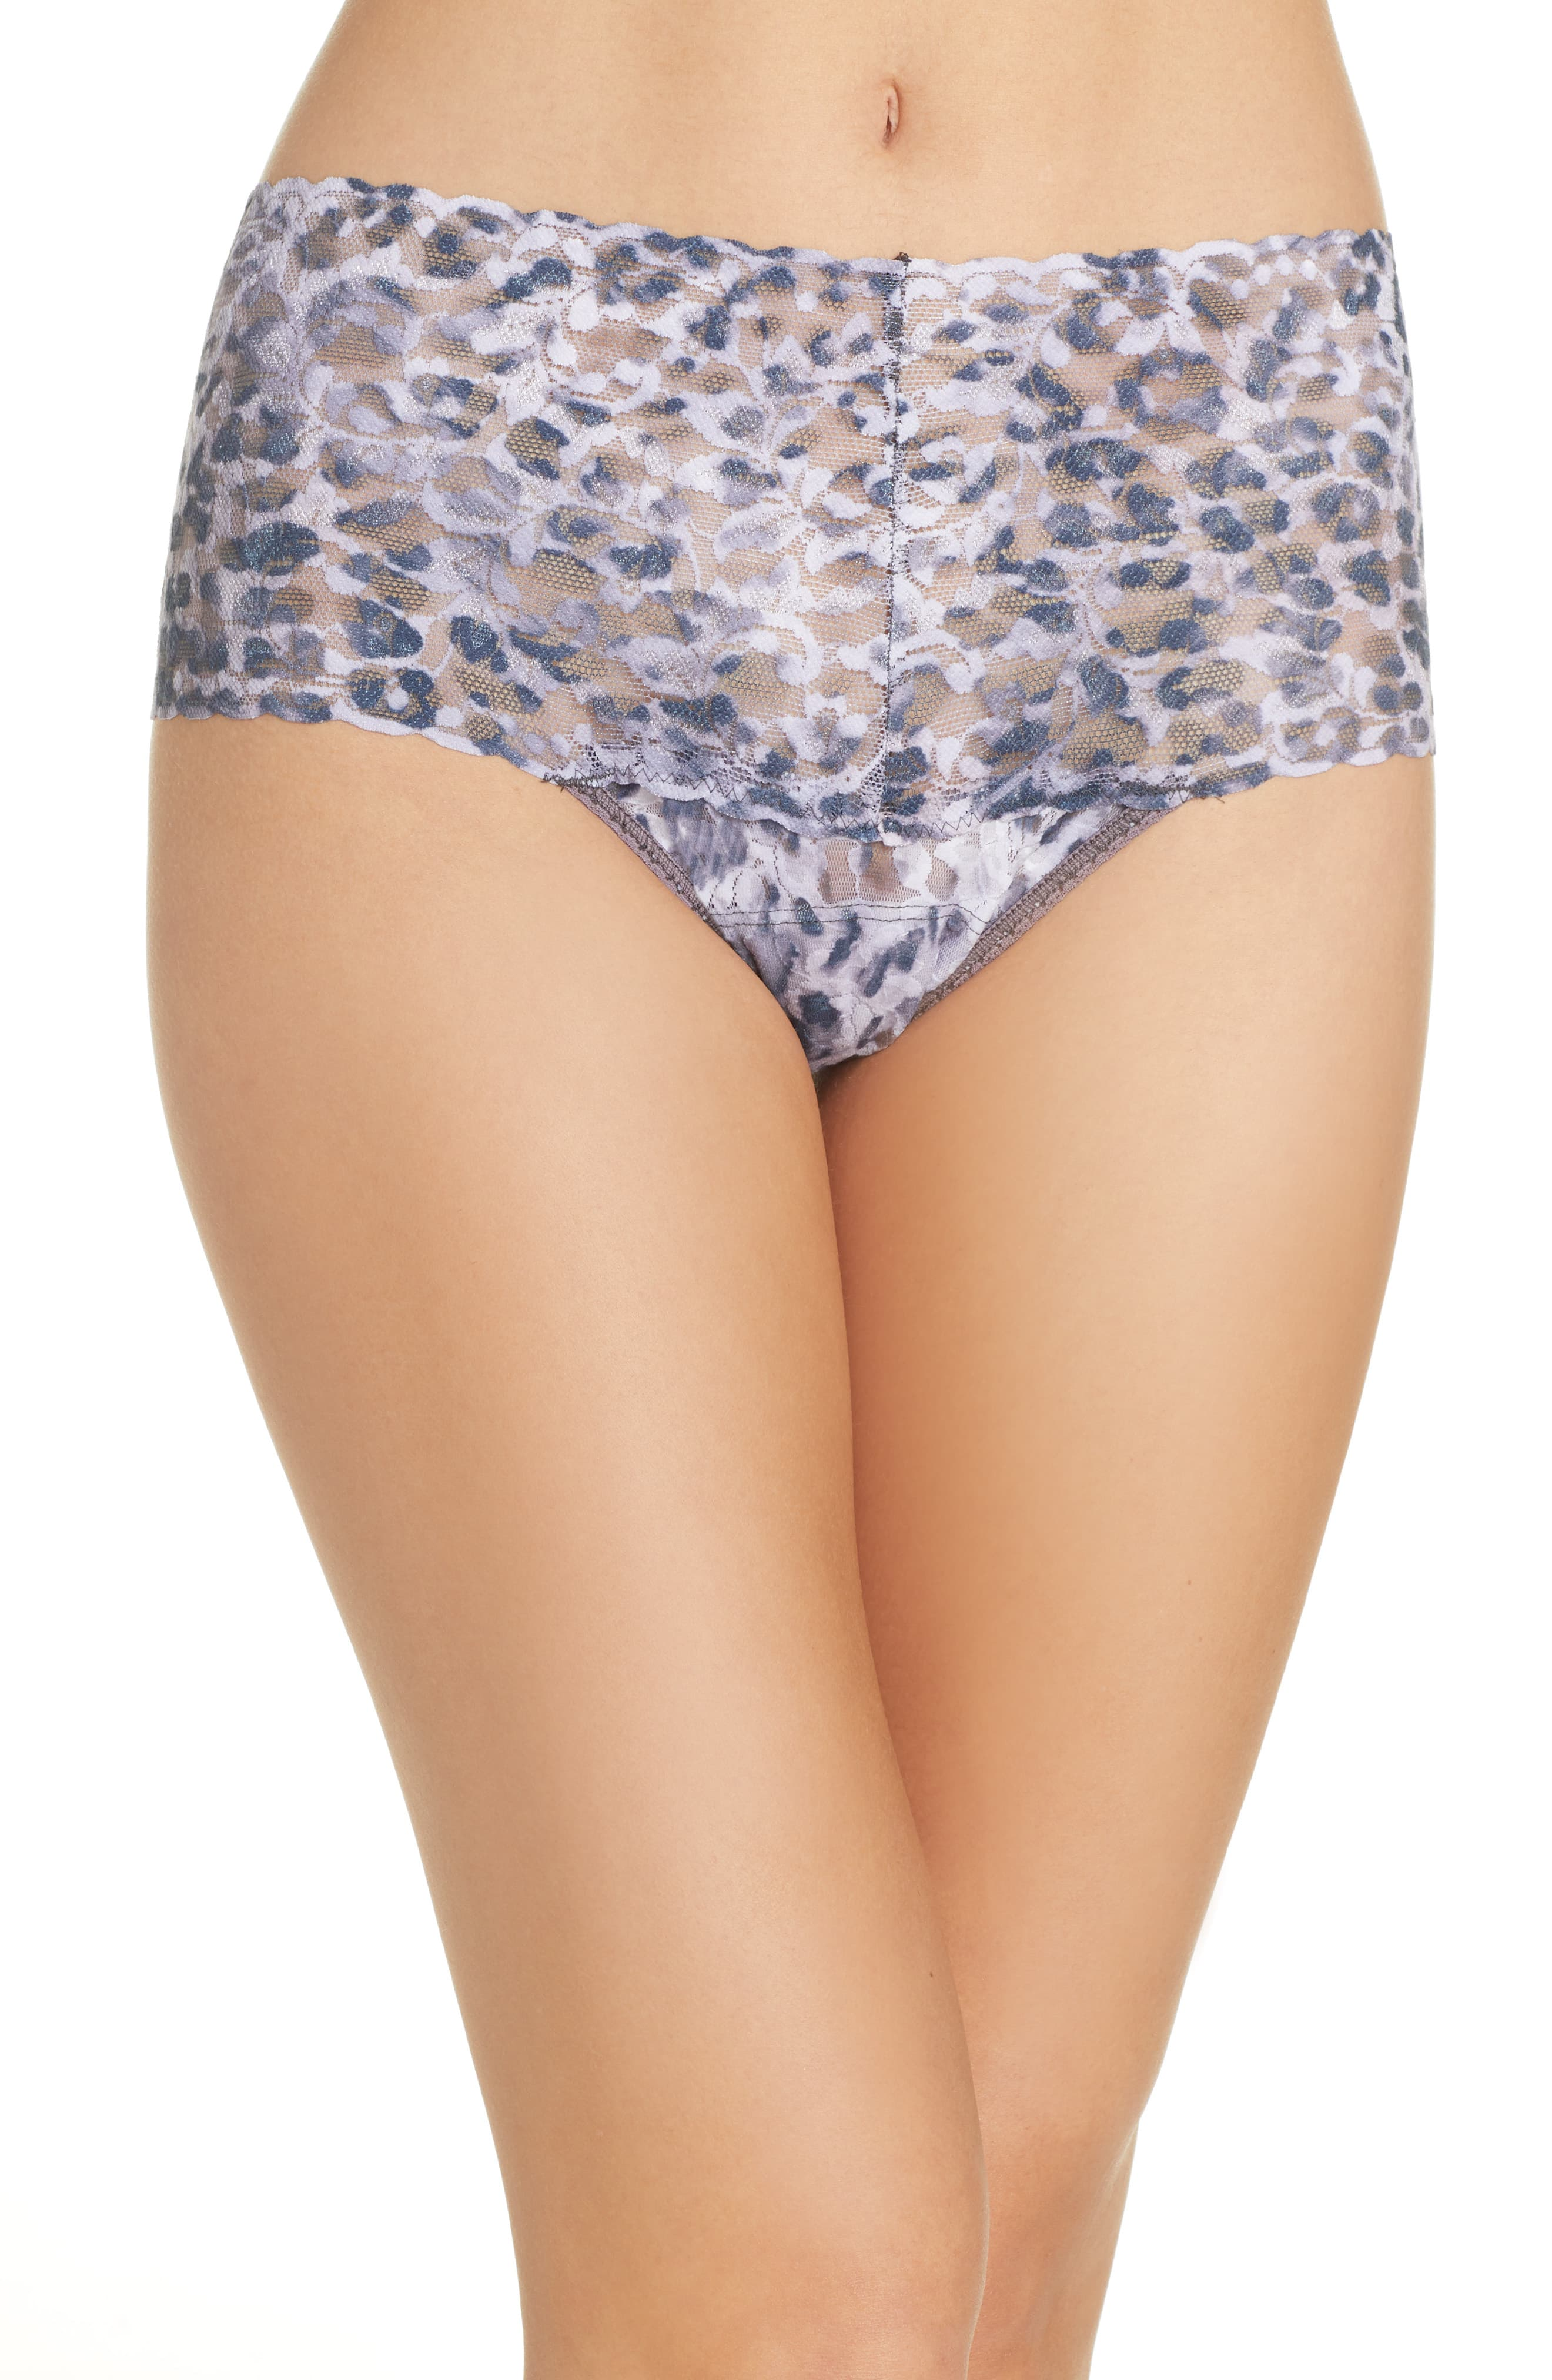 5b576a51b07d Hanky Panky Blushing Leopard Retro Thong in 2019 | Products | Animal ...